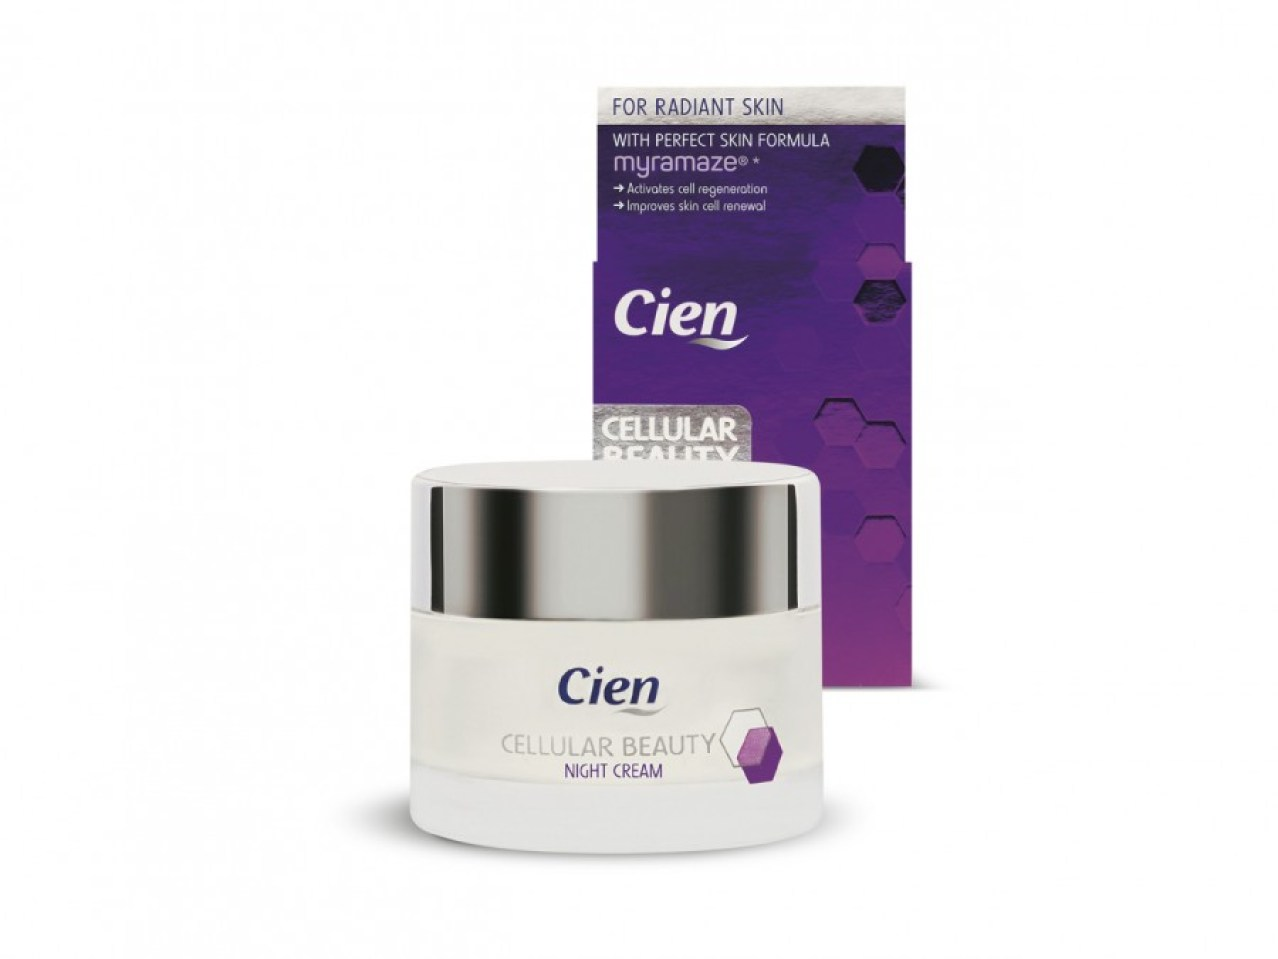 cien 03 - Lidl Cien Cellulair | Biodermal P-CL-E | Review